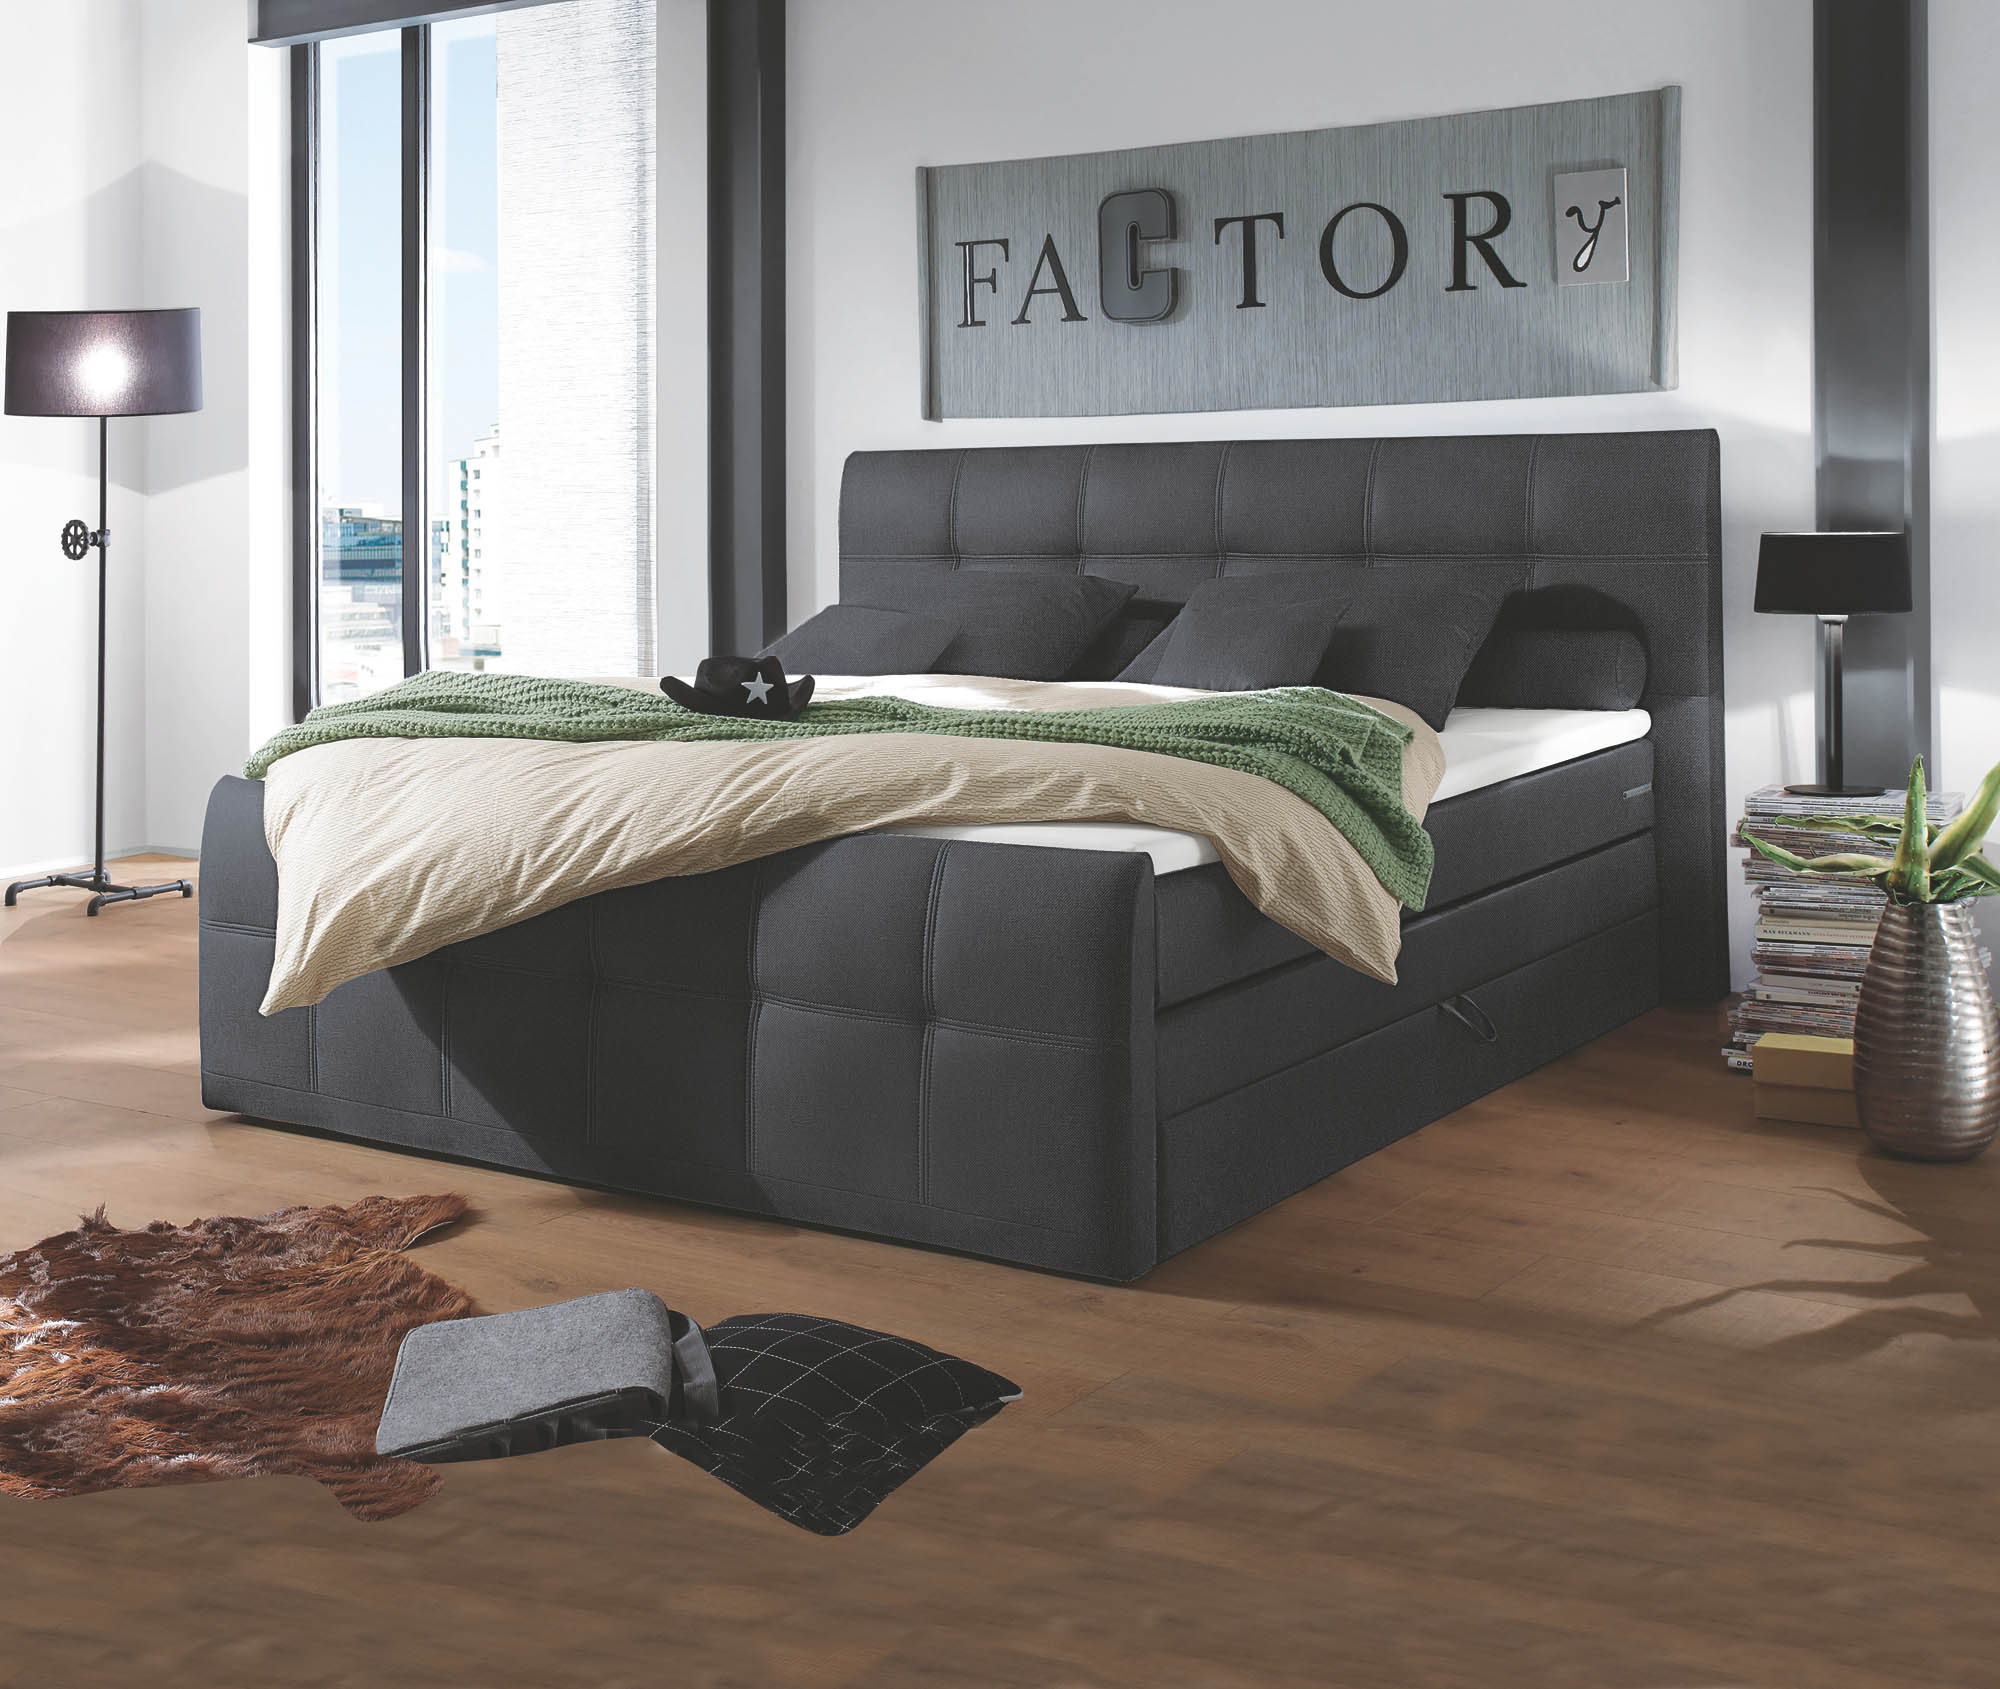 sacramento boxspringbett 180x200 inkl topper mit bettkasten. Black Bedroom Furniture Sets. Home Design Ideas